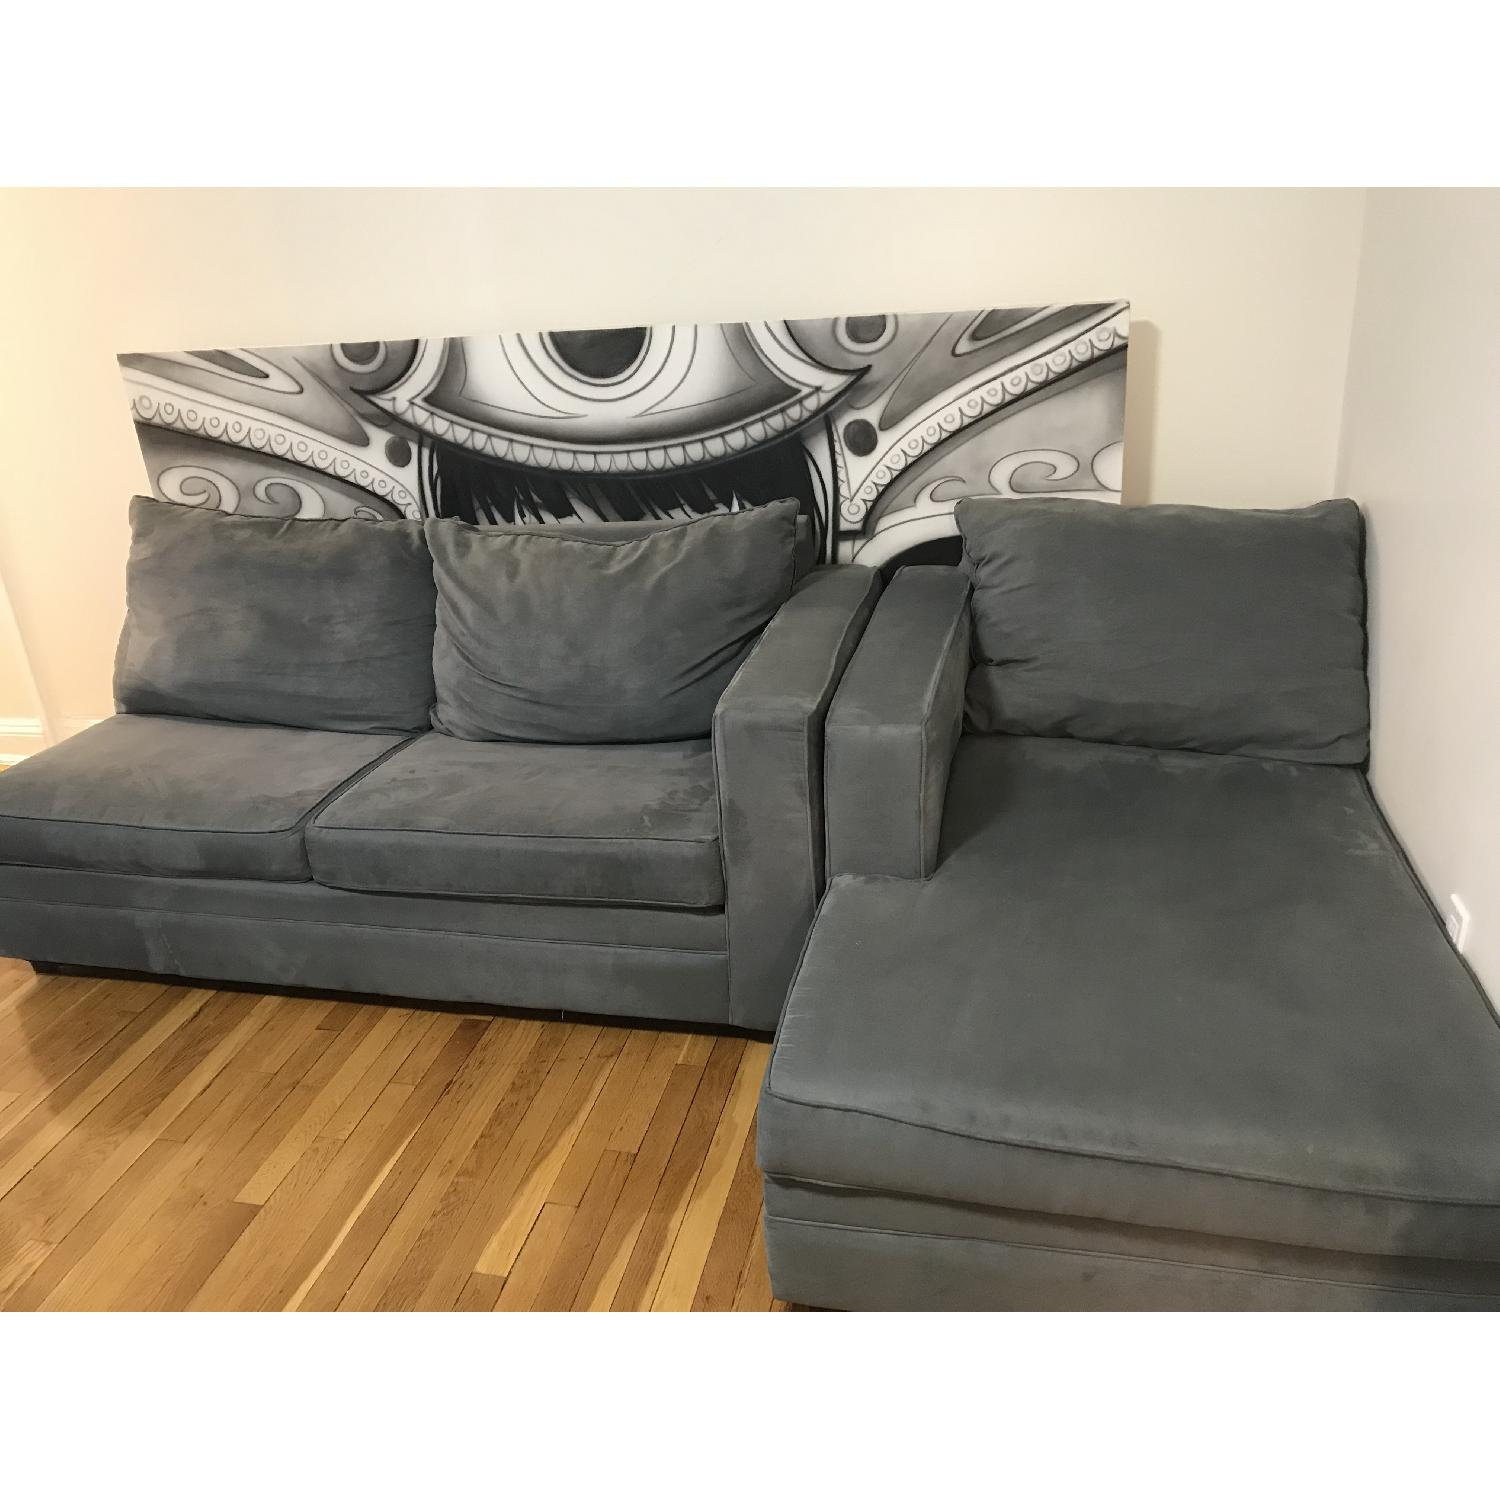 Bobs 2 Piece Sectional Sofa in Grey w Pillows AptDeco